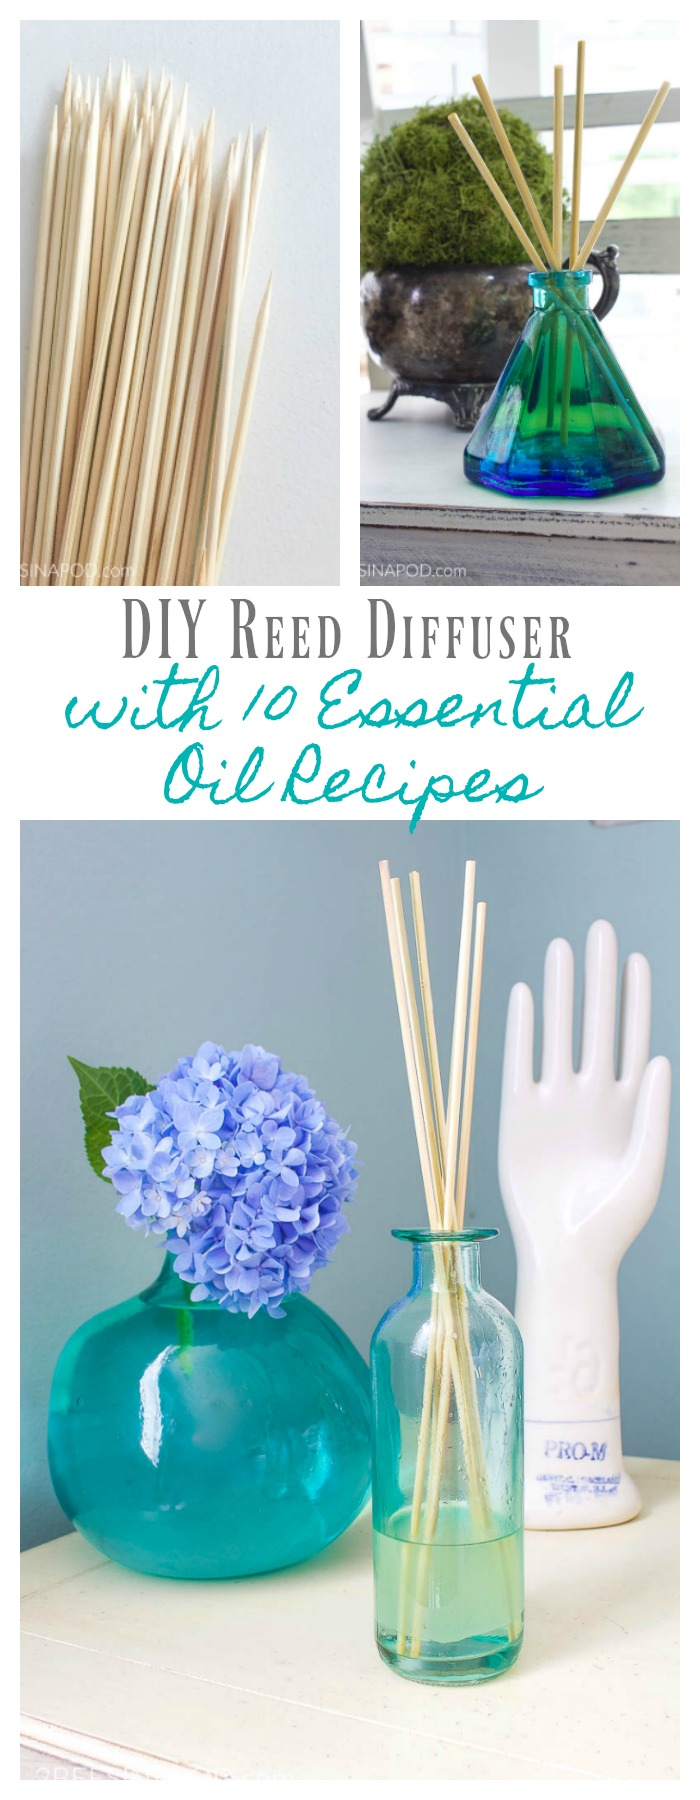 DIY Reed Diffuser with 10 Essential Oil Recipes. Perfect essential oil recipes for whatever is going on in your life.